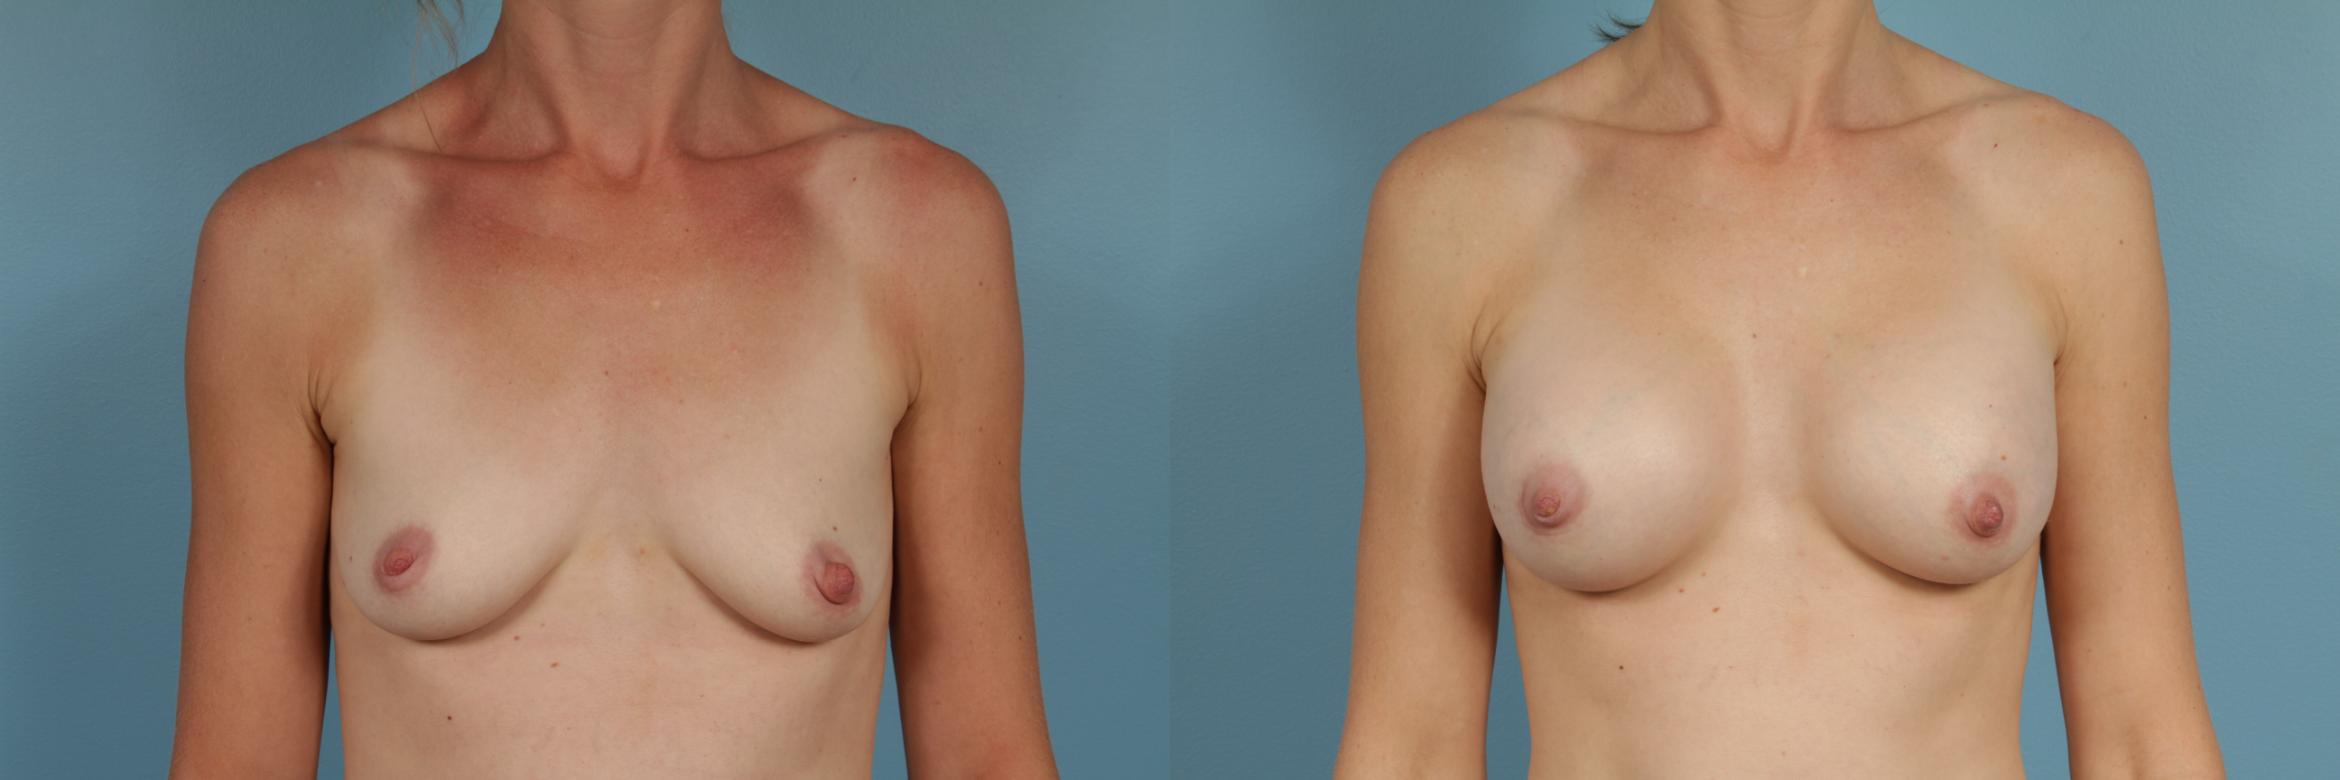 Breast Augmentation Case 262 Before & After View #1 | Chicago, IL | TLKM Plastic Surgery